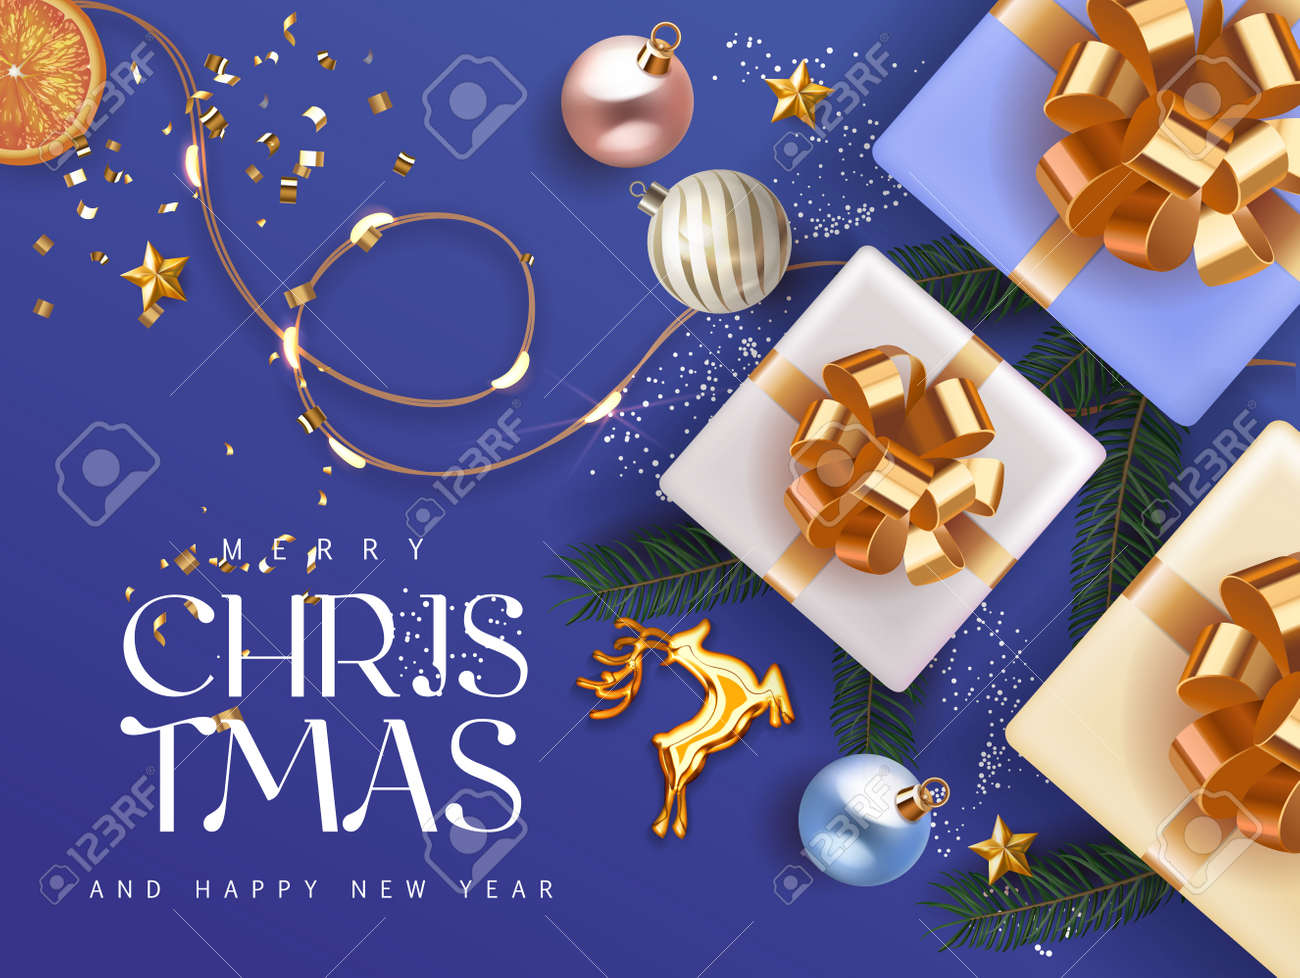 Merry Christmas and Happy New 2021 Year deep blue cyan Holiday background with gift boxes with gold ribbon fir tree branches christmas balls gold deer and lights. Festive Xmas decoration in blue - 161202086